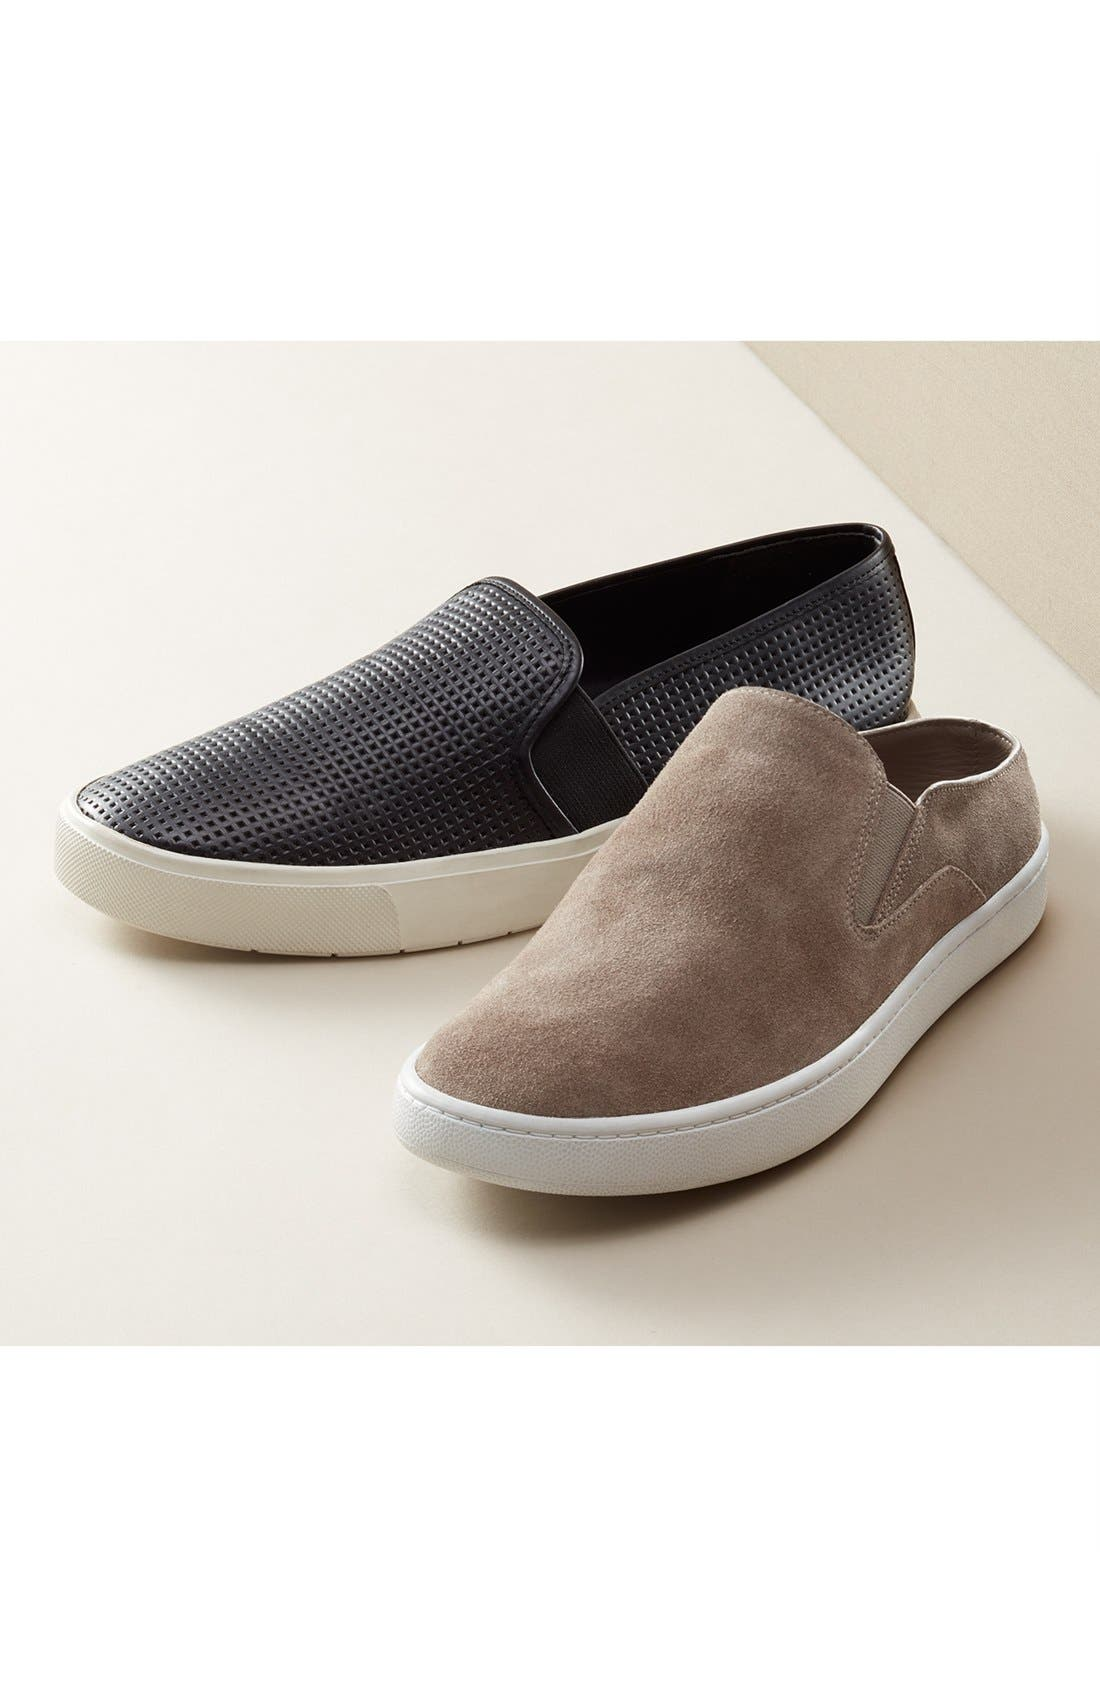 Blair 5 Slip-On Sneaker,                             Alternate thumbnail 6, color,